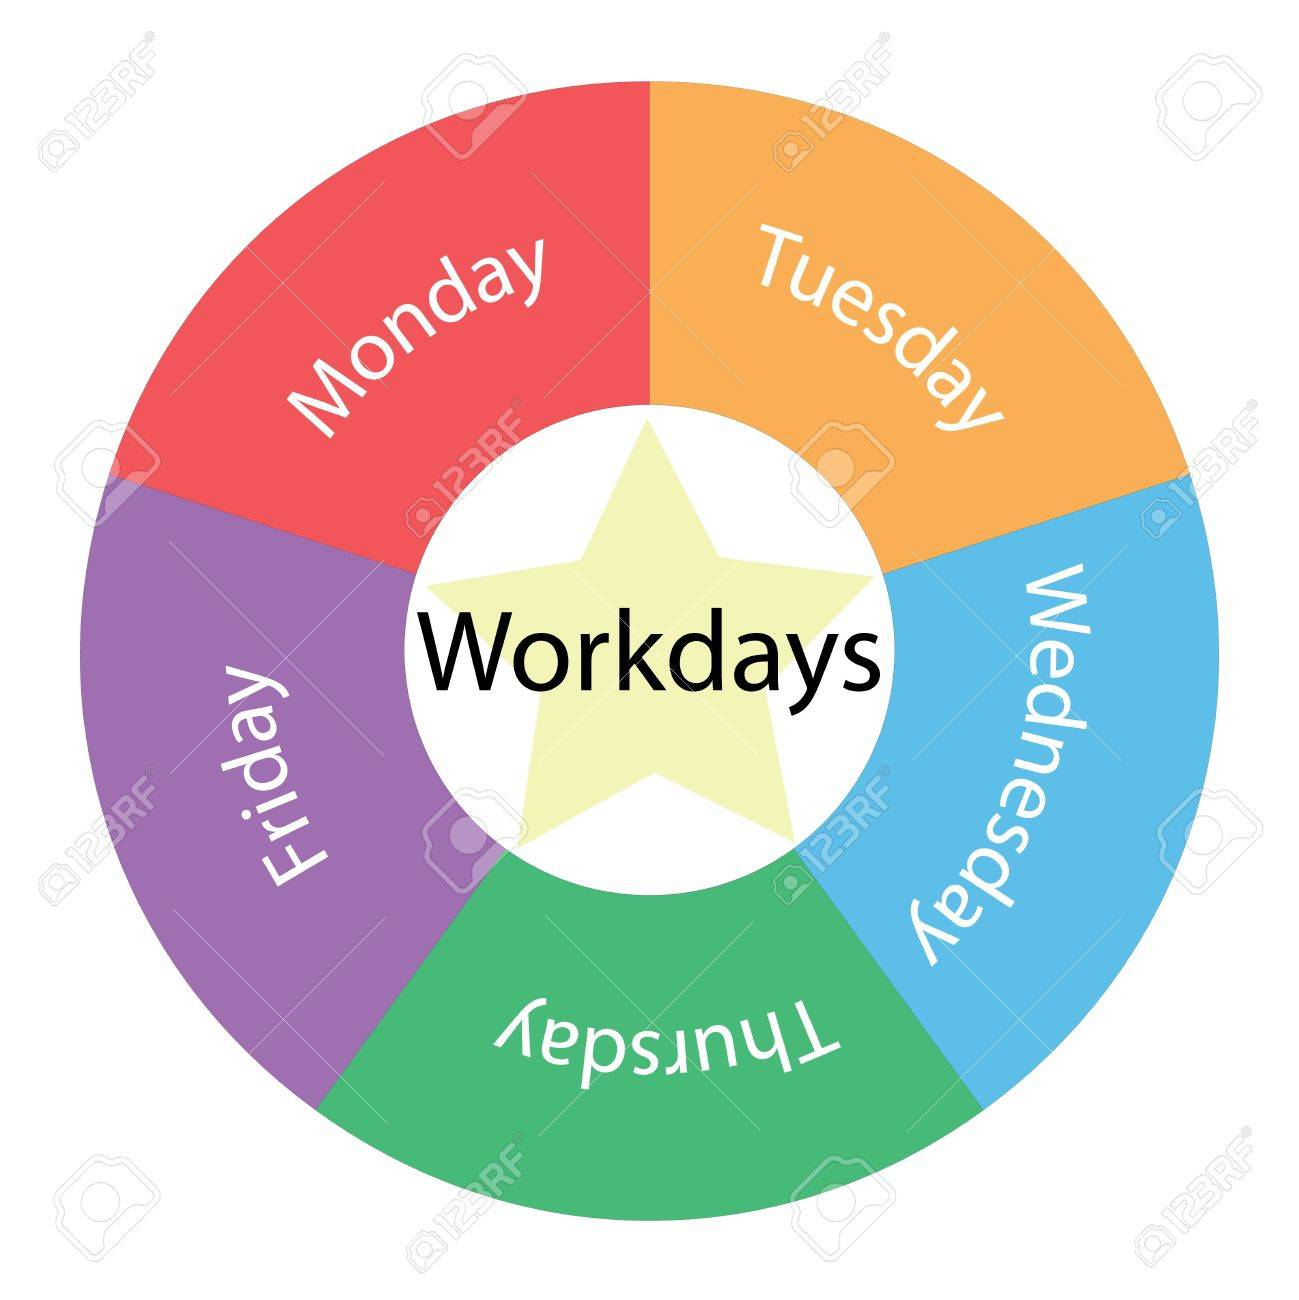 Workdays circular concept with great terms around the center including Monday through Friday with a yellow star in the middle Stock Photo - 15571987